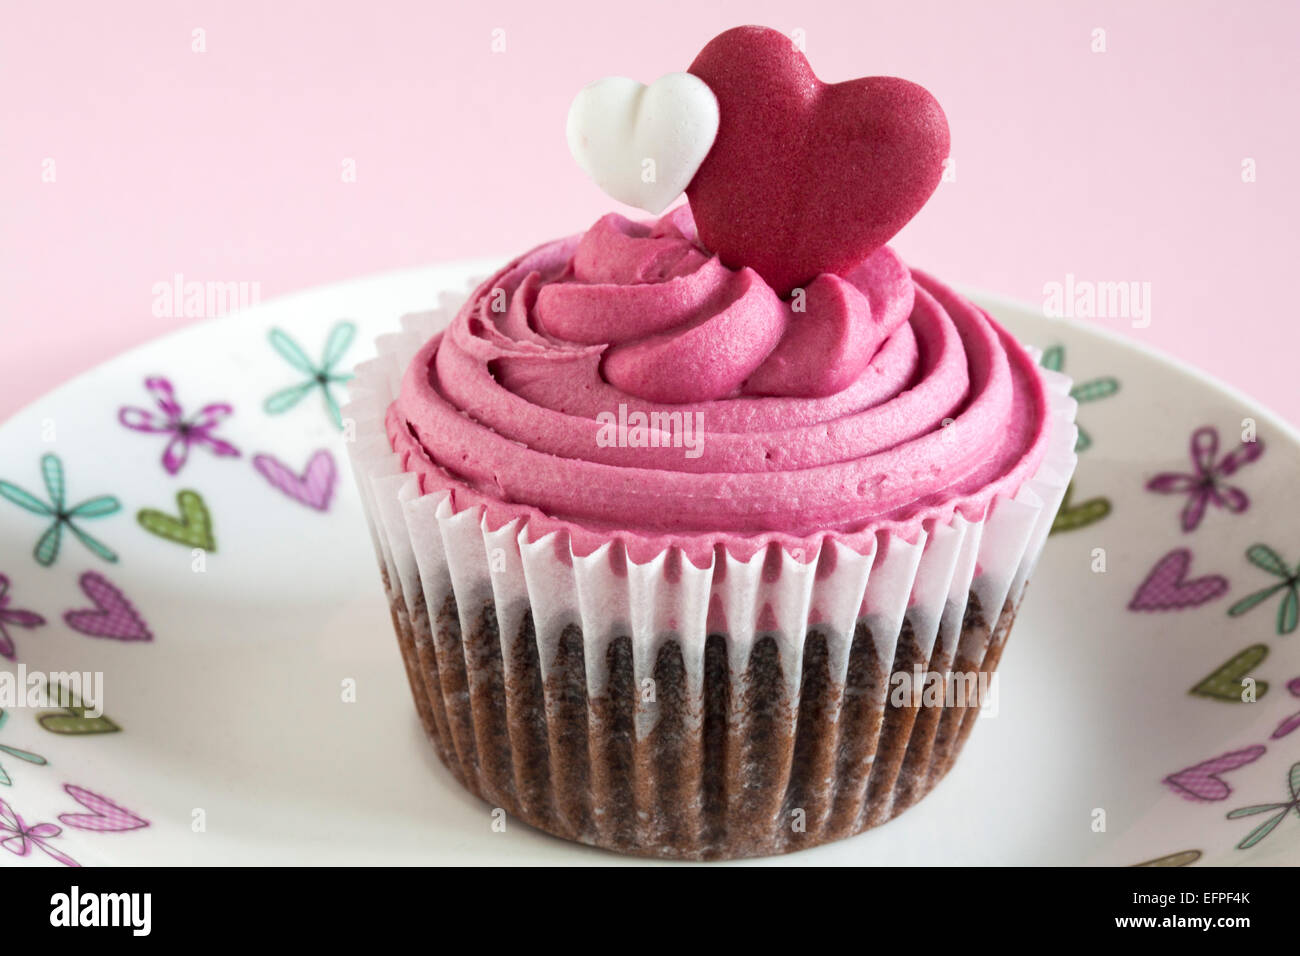 Marks U0026 Spencer Sweet Heart Cupcake On Decorative Hearts Plate Set On Pink  Background   Ideal For Valentines Day, Valentine Day